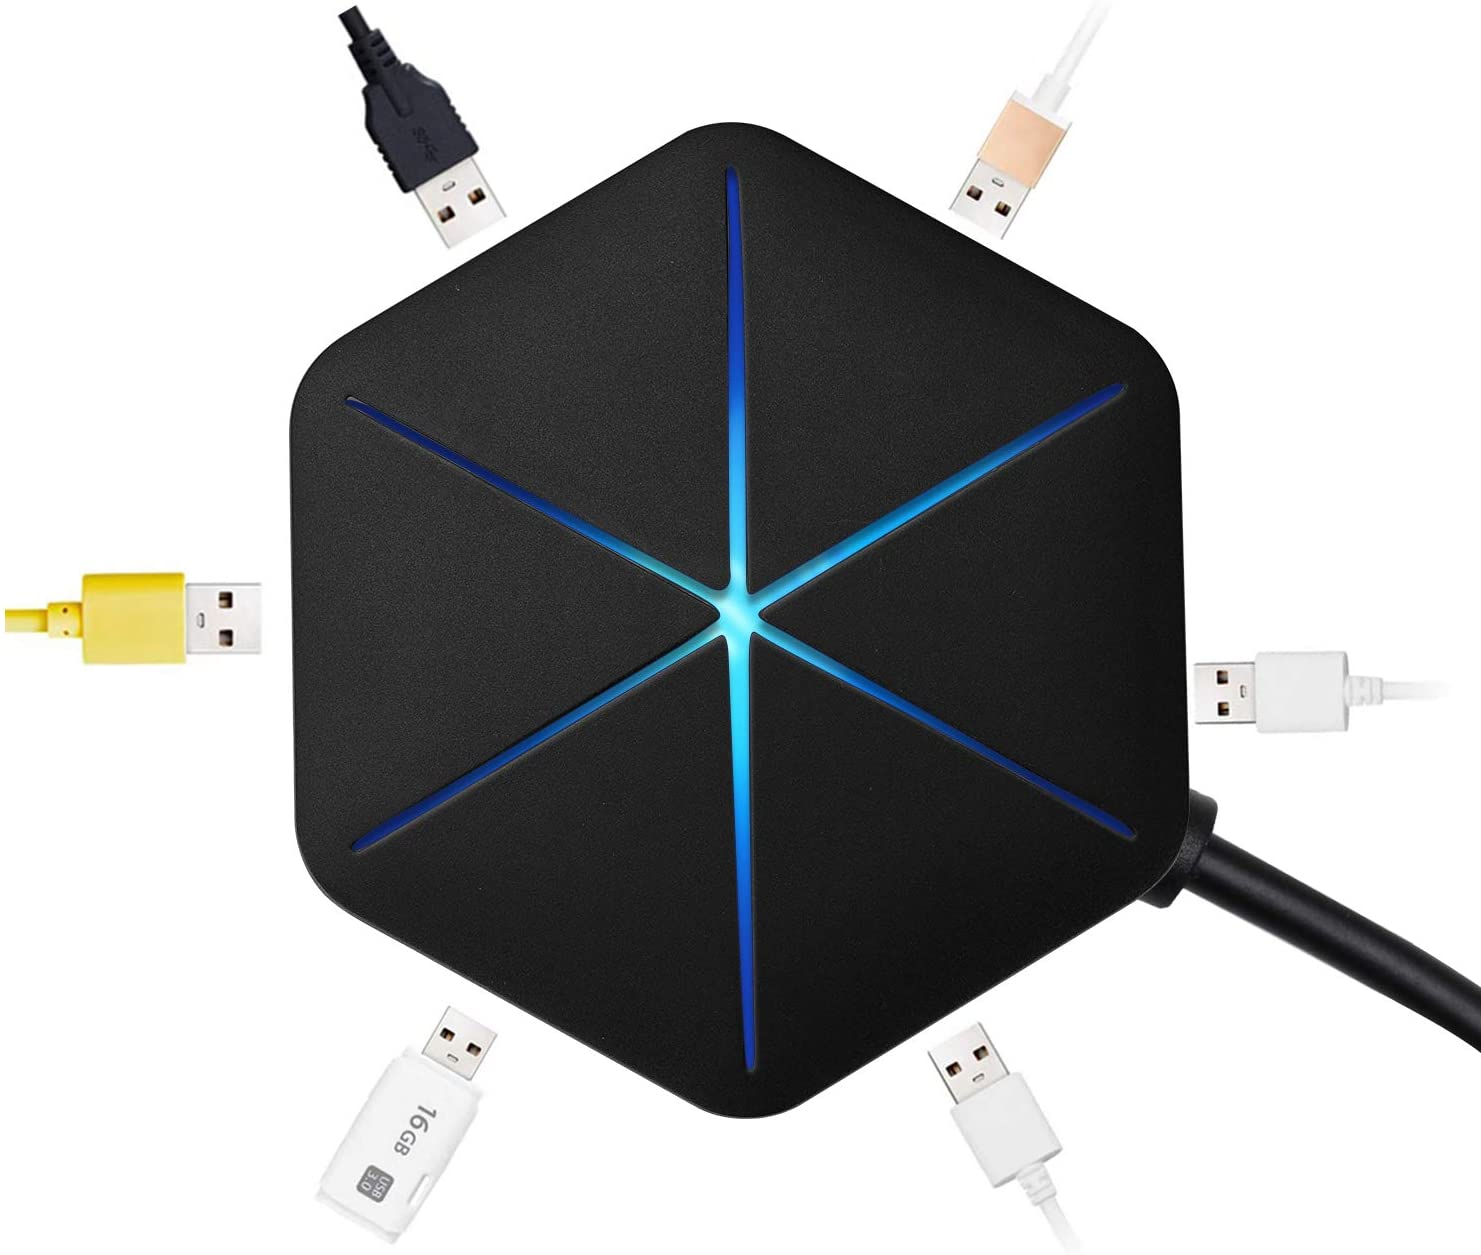 MefeCoorel USB Hub 6-Port USB 2.0 Hub USB Extension Cable Blue LEDs Extra USB Ports for Devices Such as PS4 Mac PC Laptop Computer Desktop